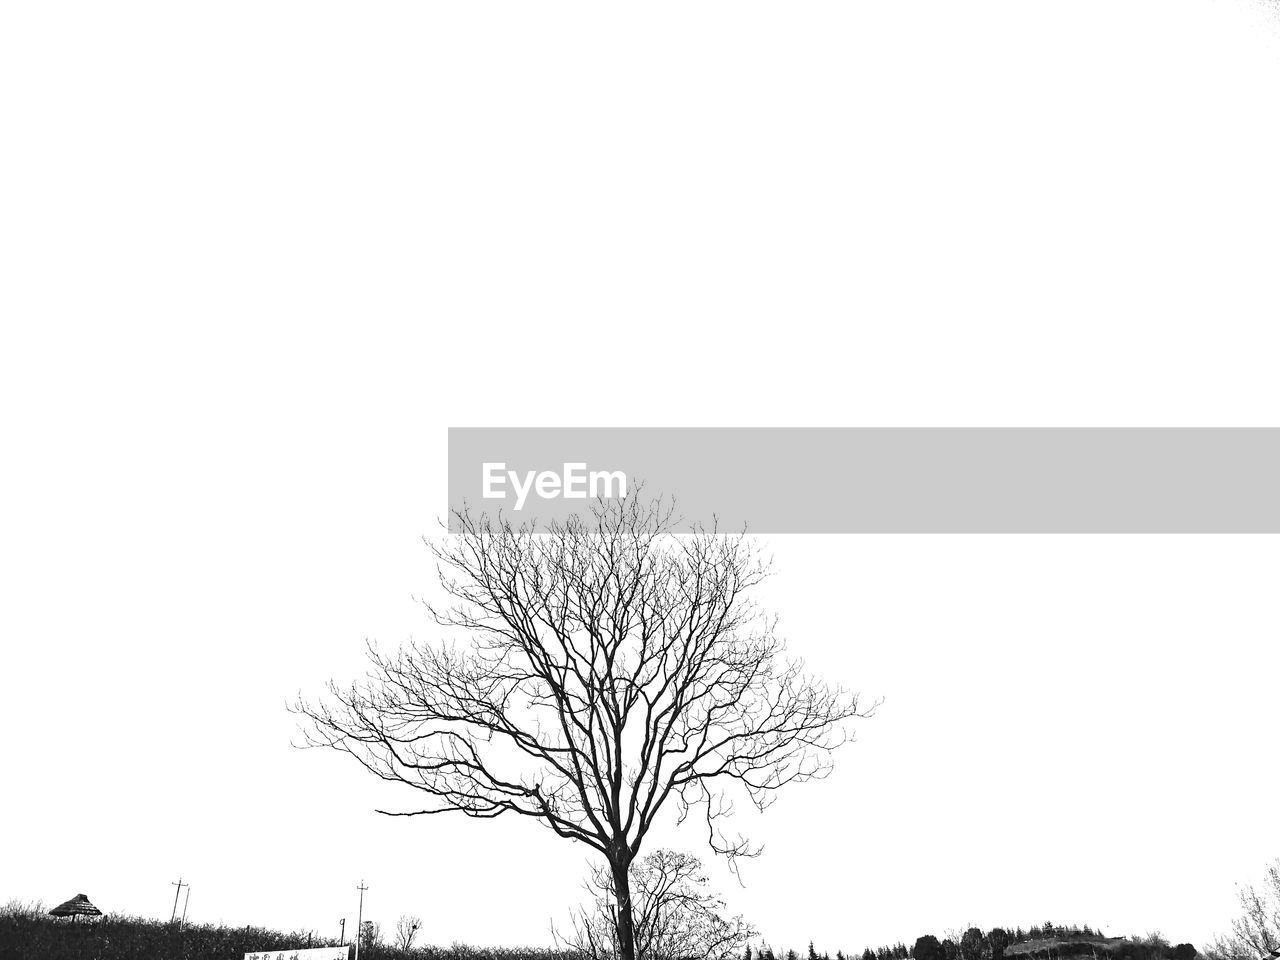 bare tree, tree, branch, tranquility, clear sky, scenics, lone, beauty in nature, nature, tree trunk, tranquil scene, isolated, landscape, outdoors, day, low angle view, no people, sky